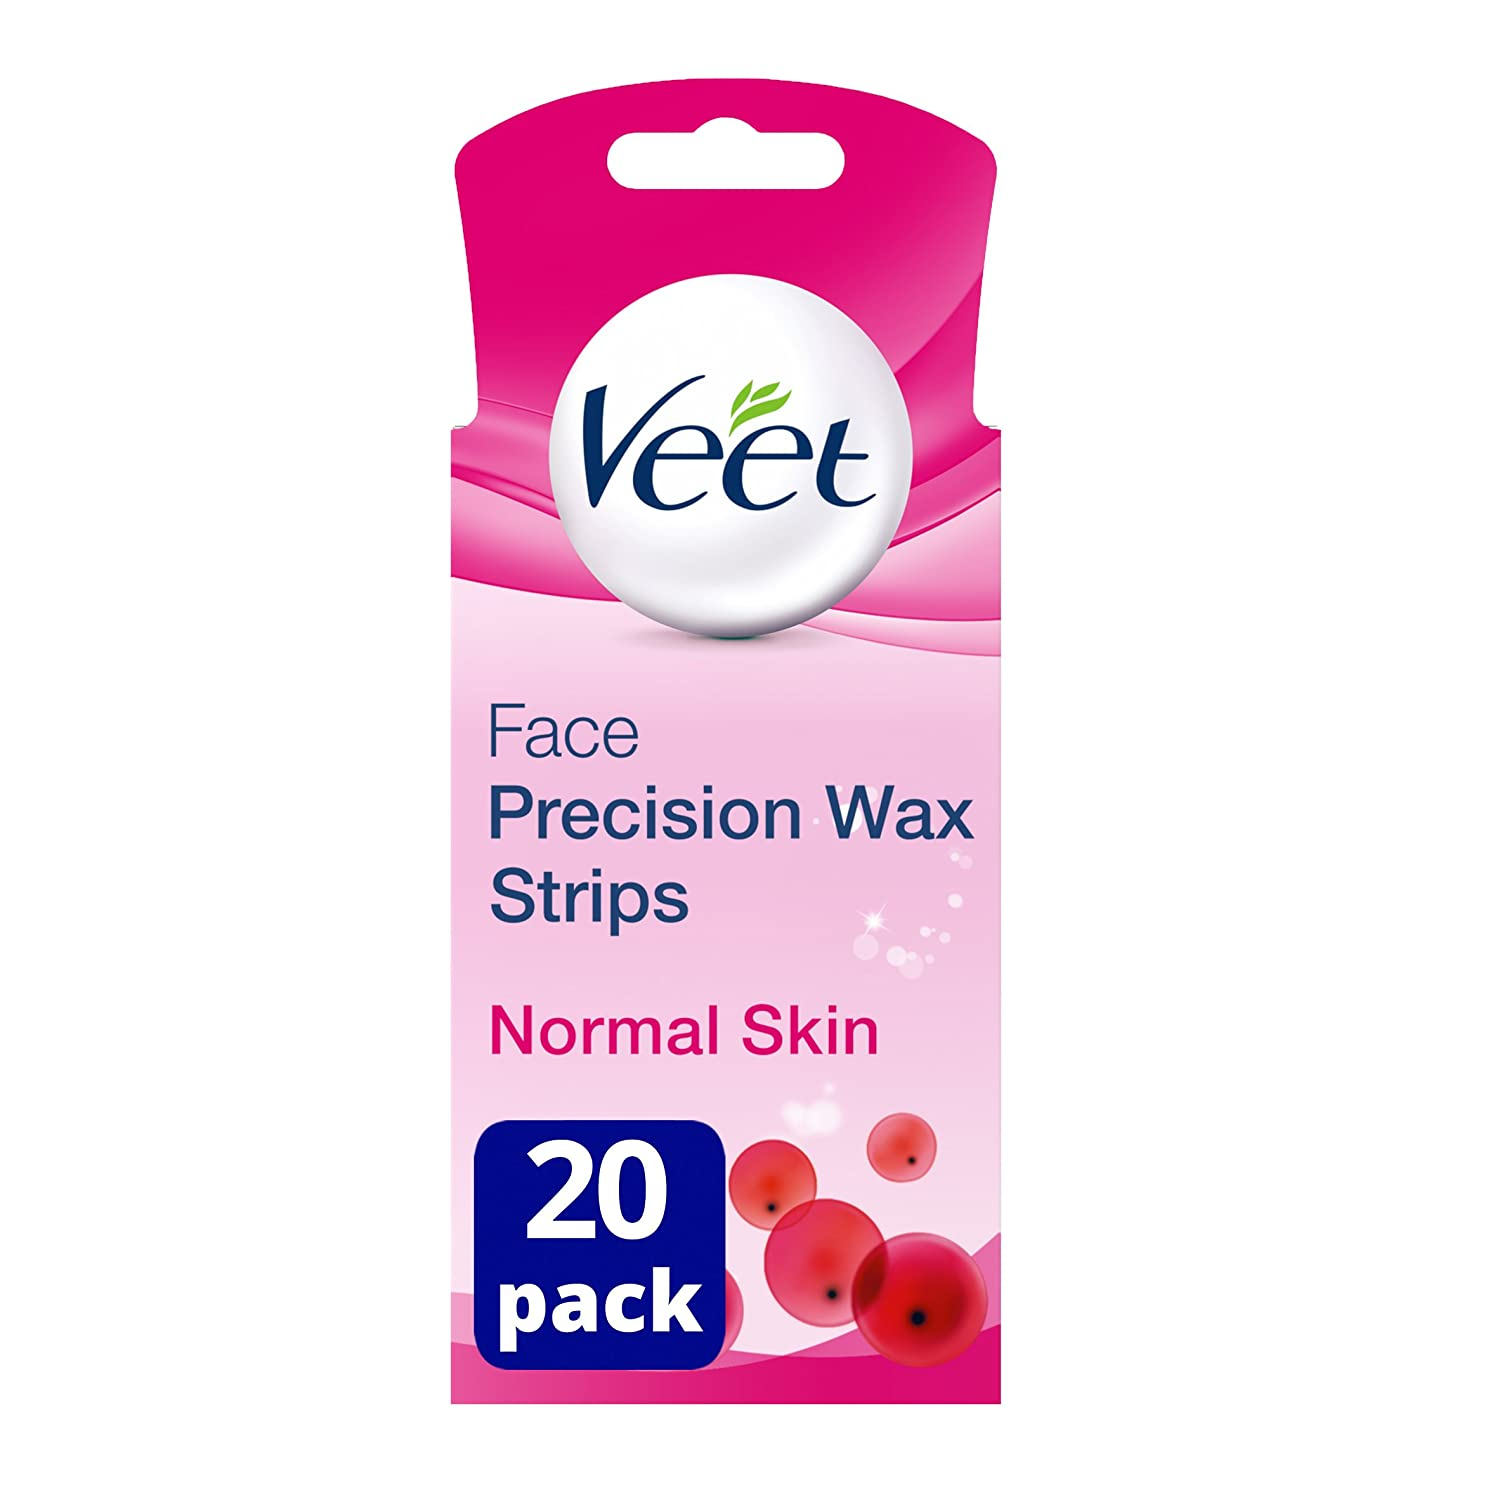 Veet EasyGrip Ready to Use 20 Wax Strips and 4 Perfect Finish Wipes for Face HealthCentre 2388130